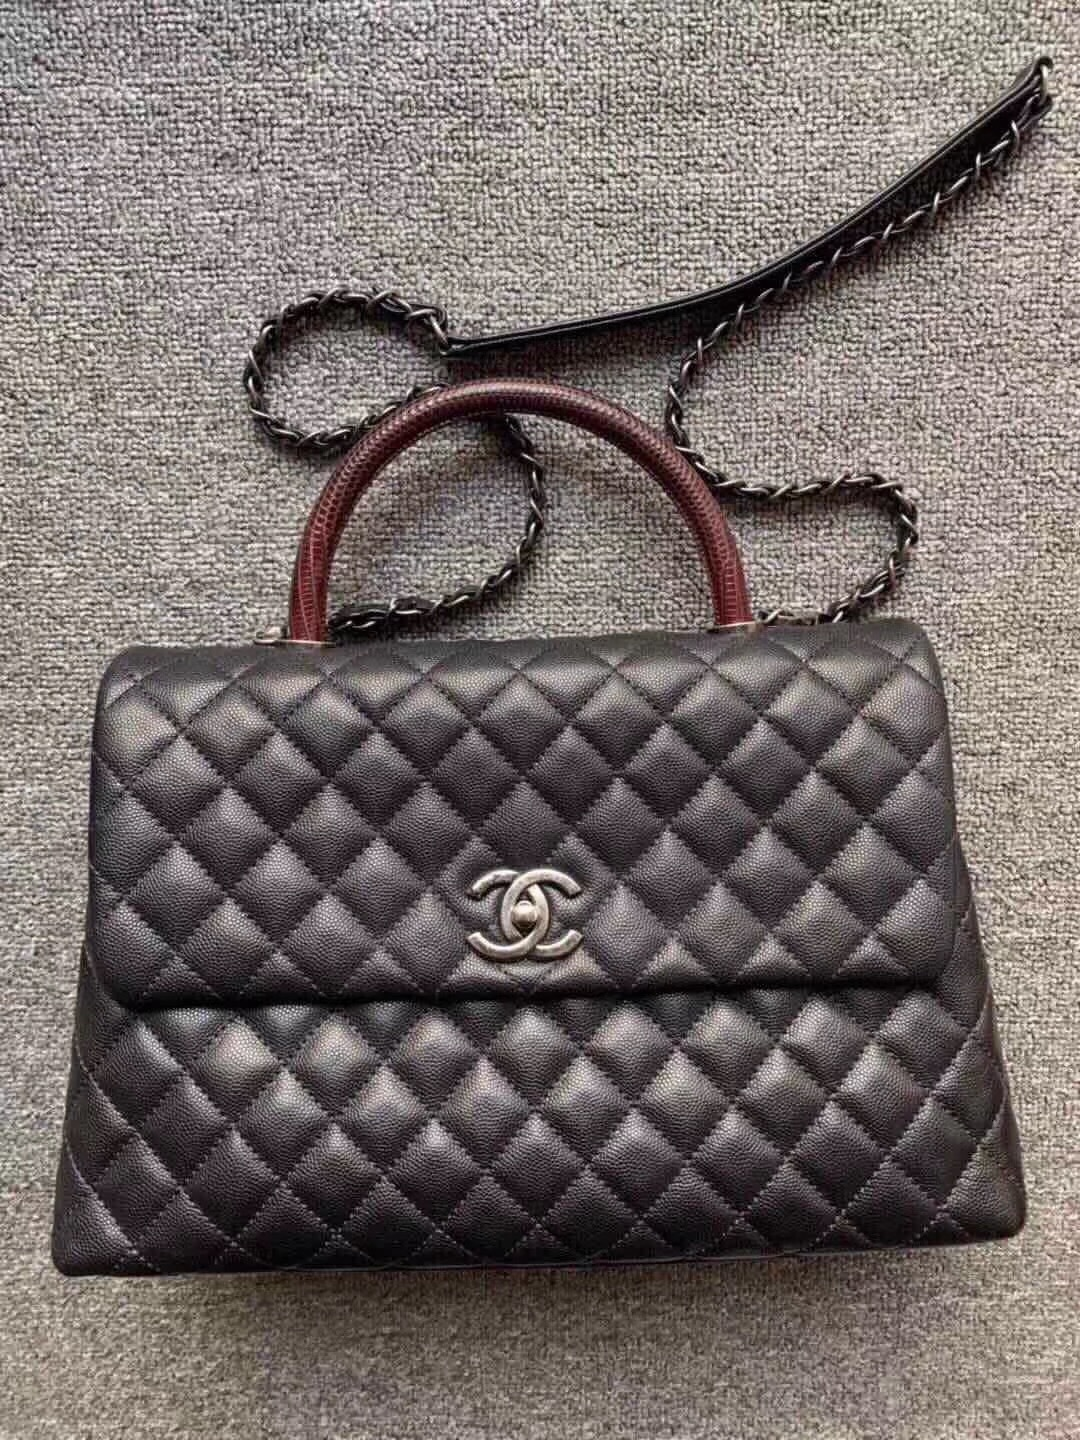 AUTHENTIC CHANEL QUILTED BLACK CAVIAR LARGE COCO PYTHON HANDLE BAG RECEIPT RHW